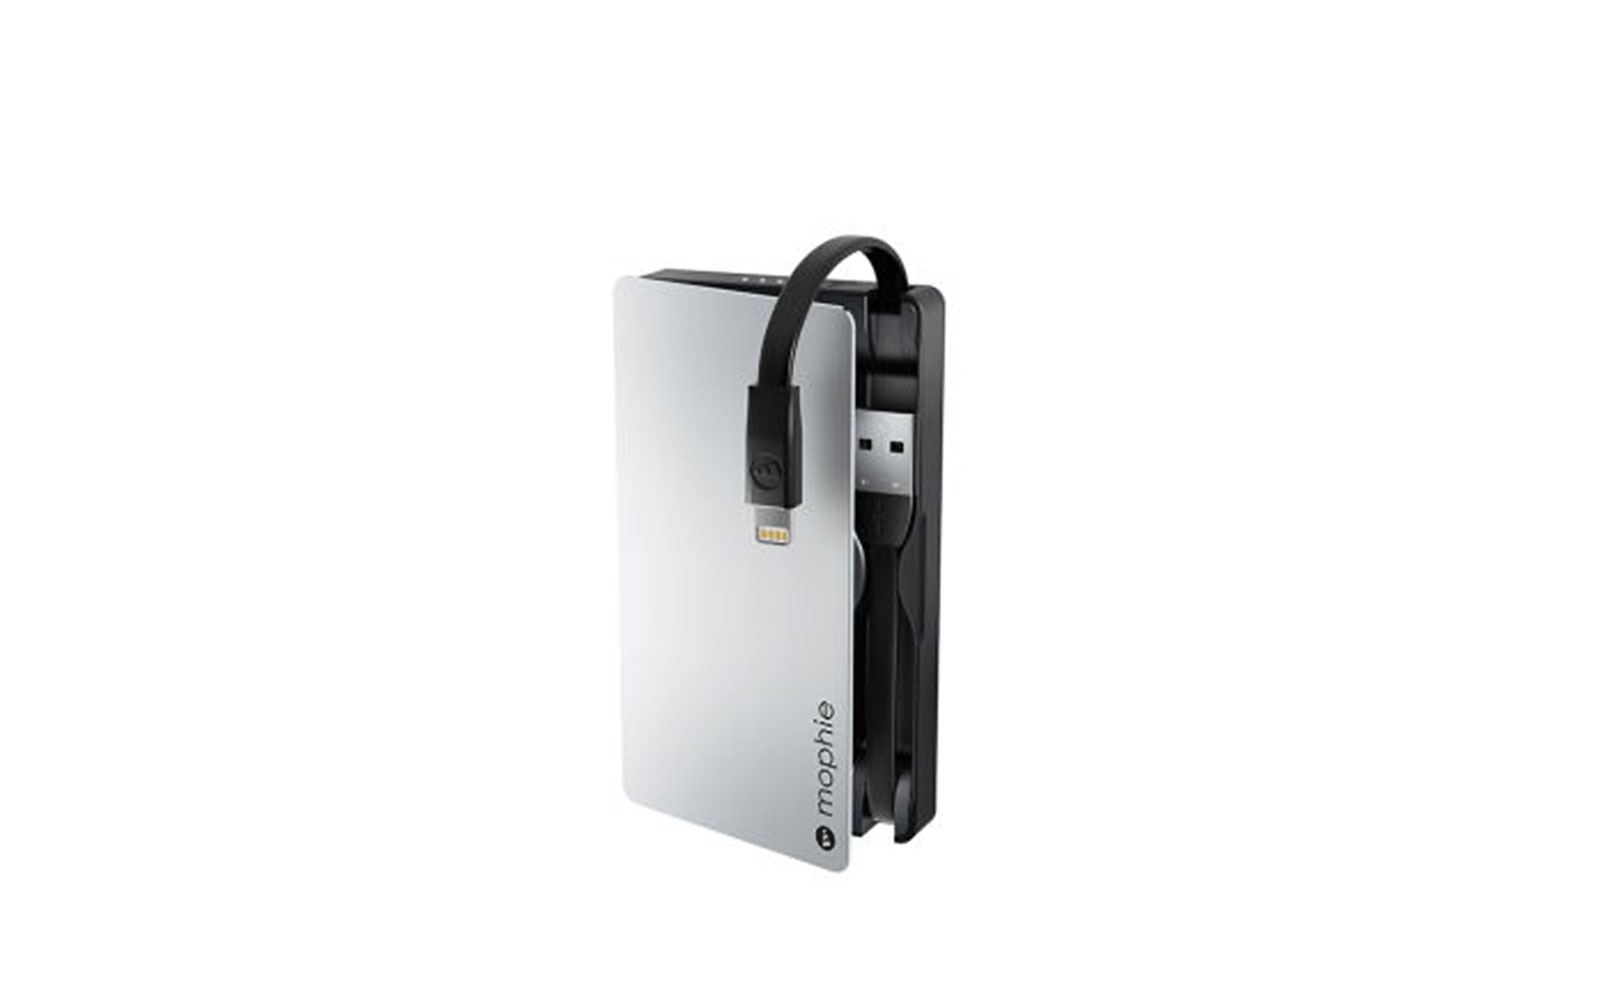 Mophie Powerstation Plus portable charger